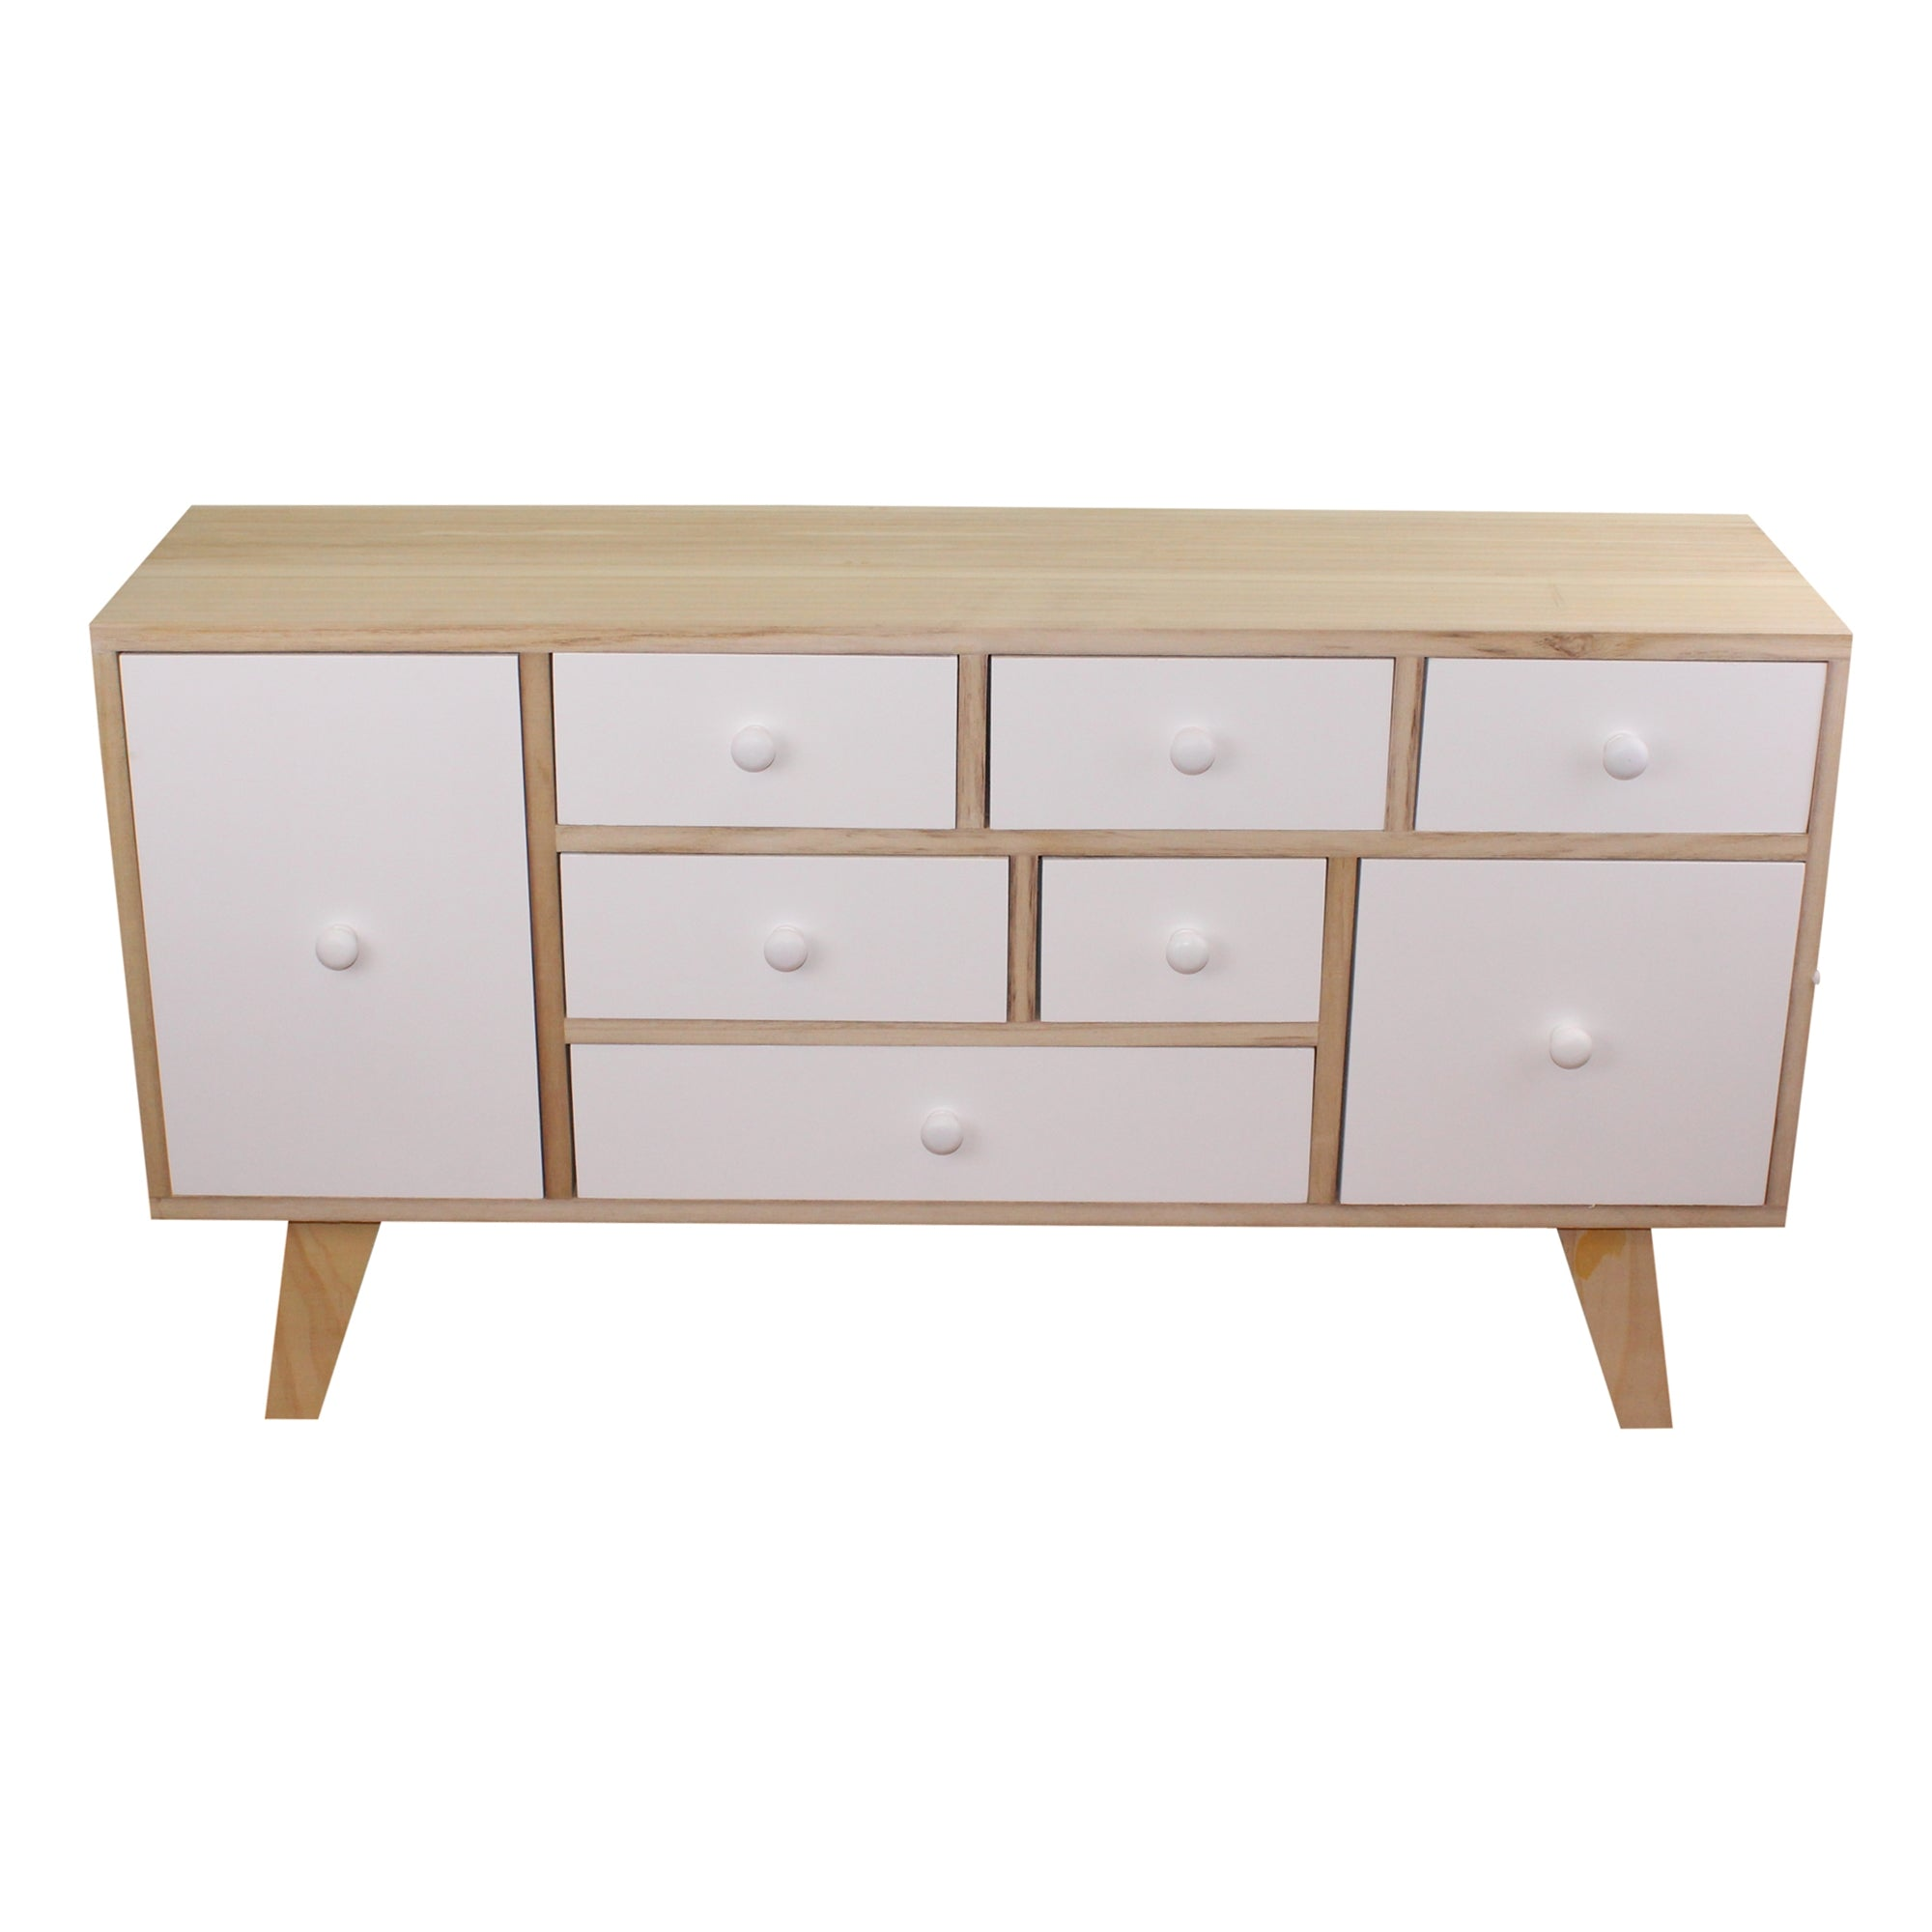 9 Drawer White & Wooden Storage Unit